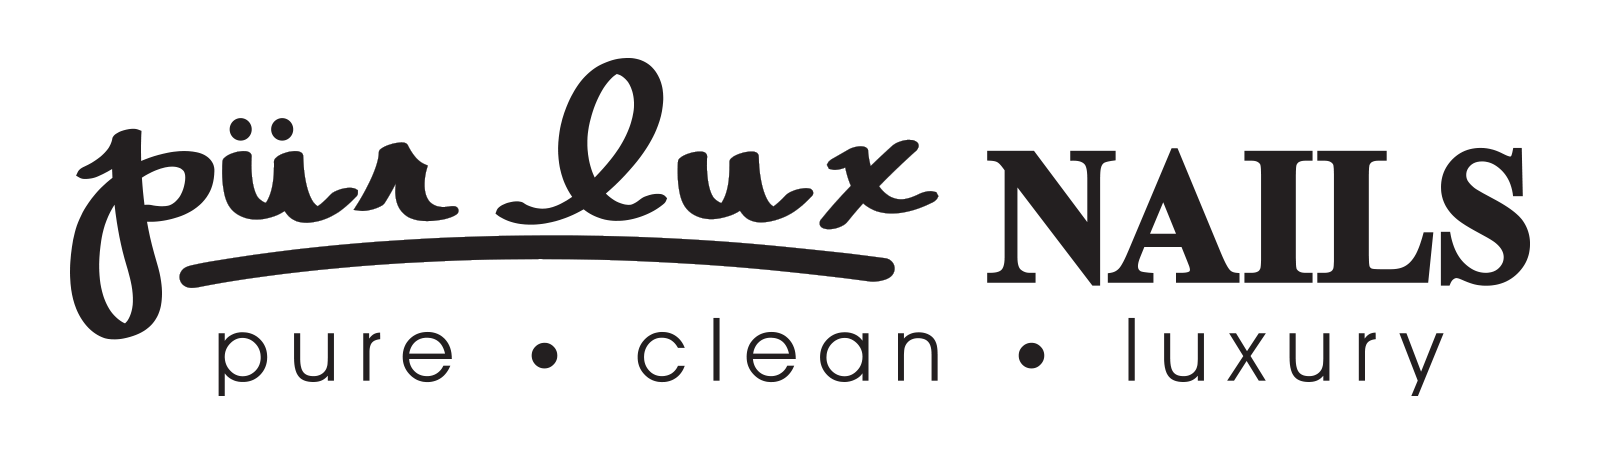 pur-lux-logo